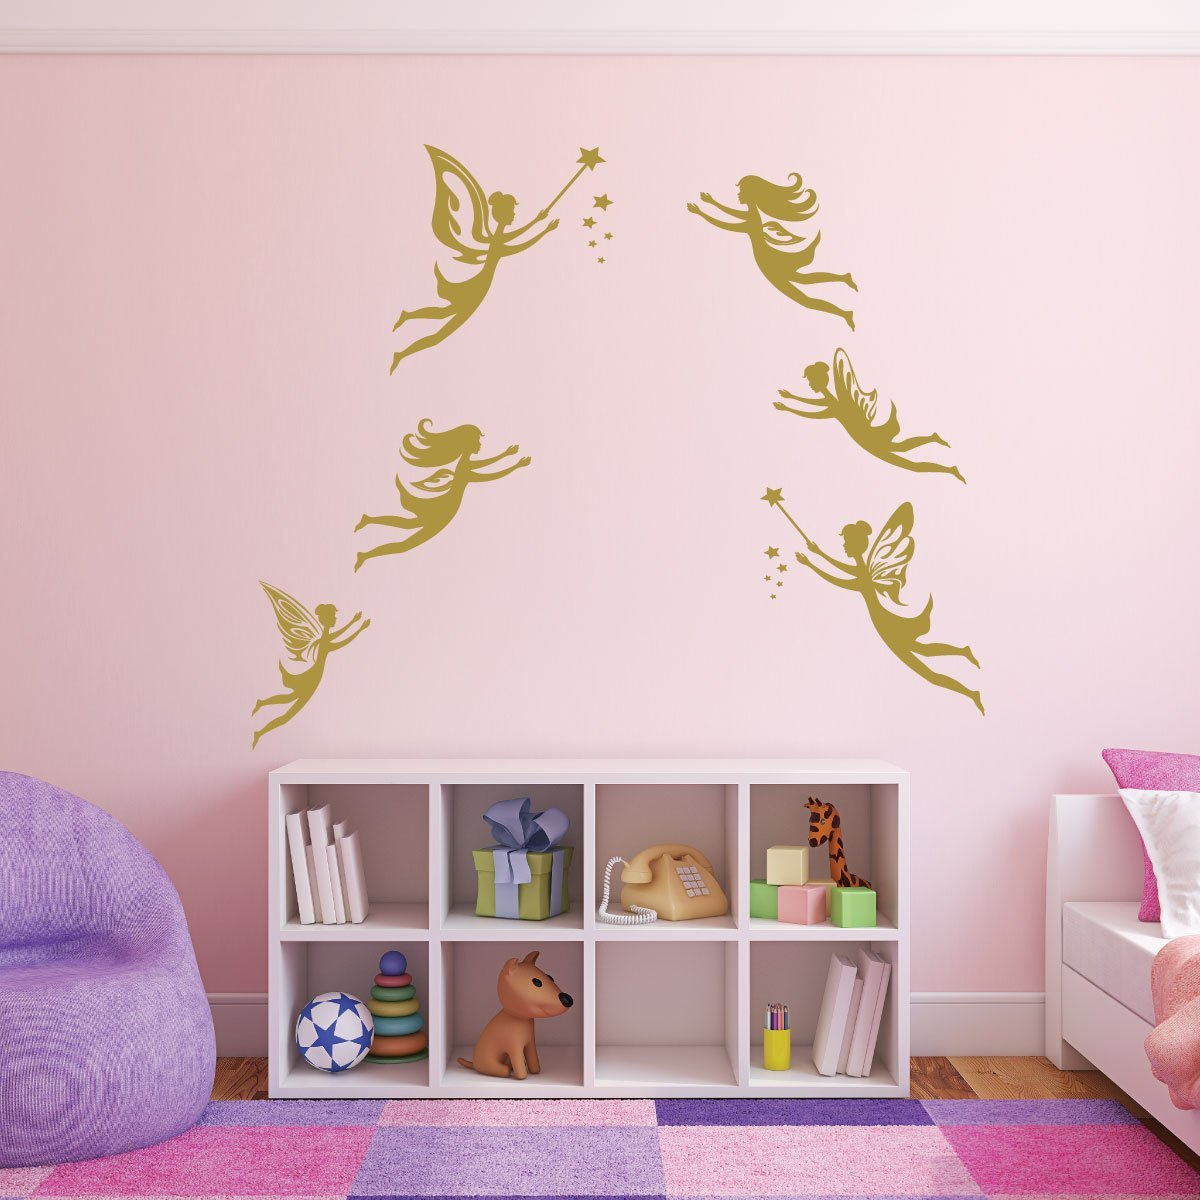 Personalized Vinyl Decor Wall Decal